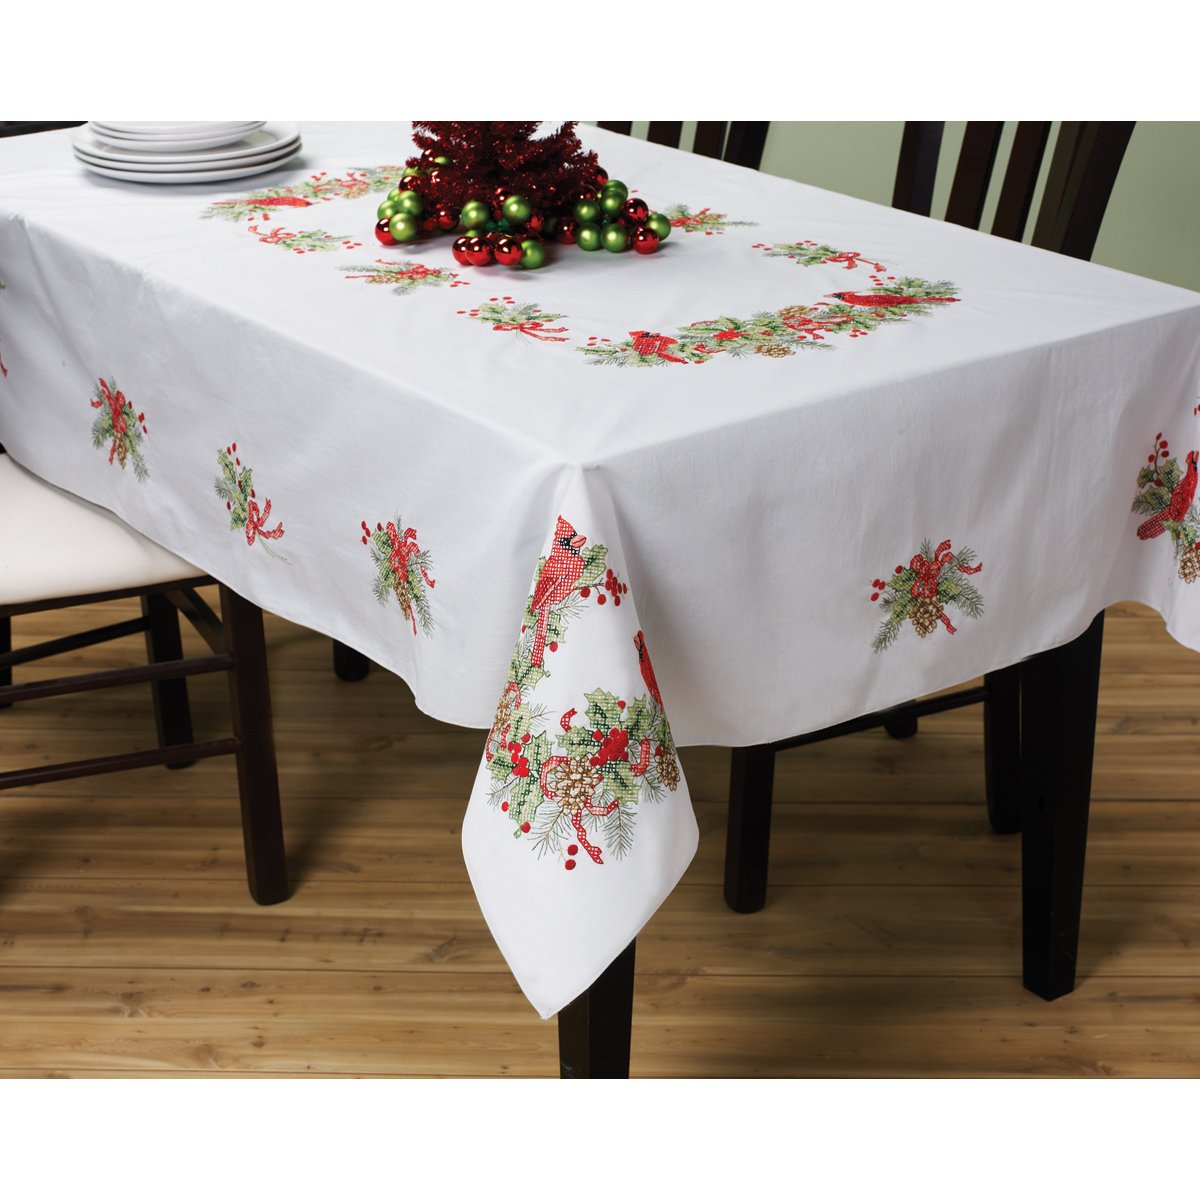 Cardinal birds cross stitch table cloth